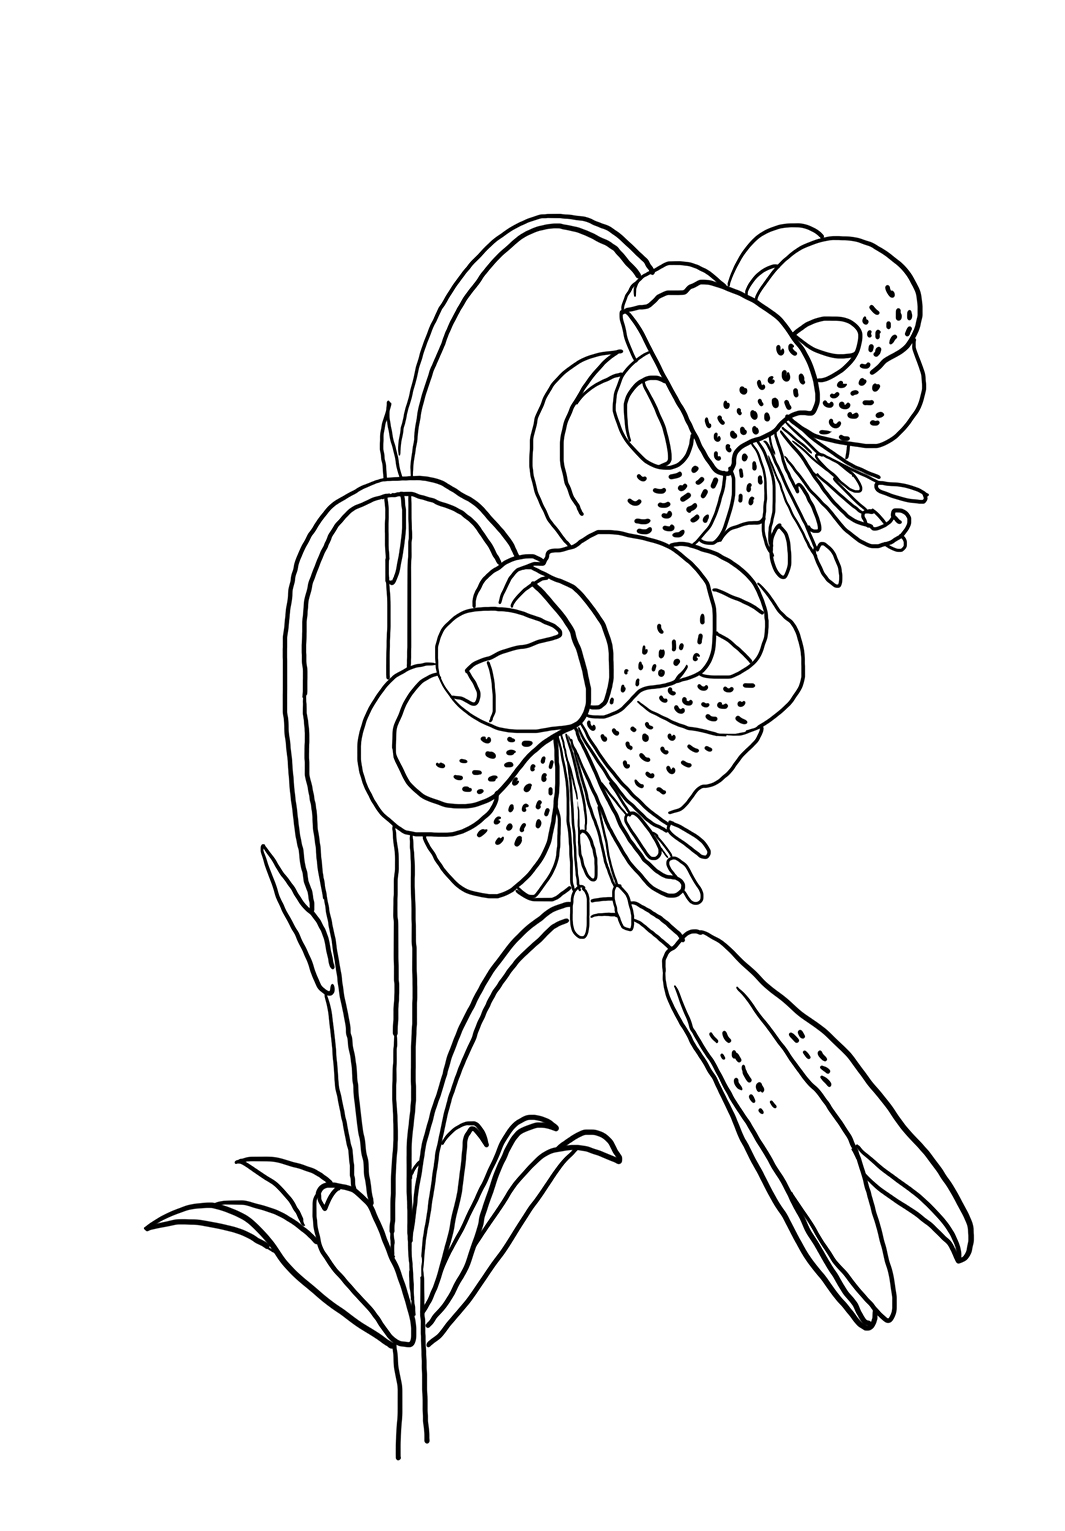 Flower Coloring Pages |Flowers Color Drawings